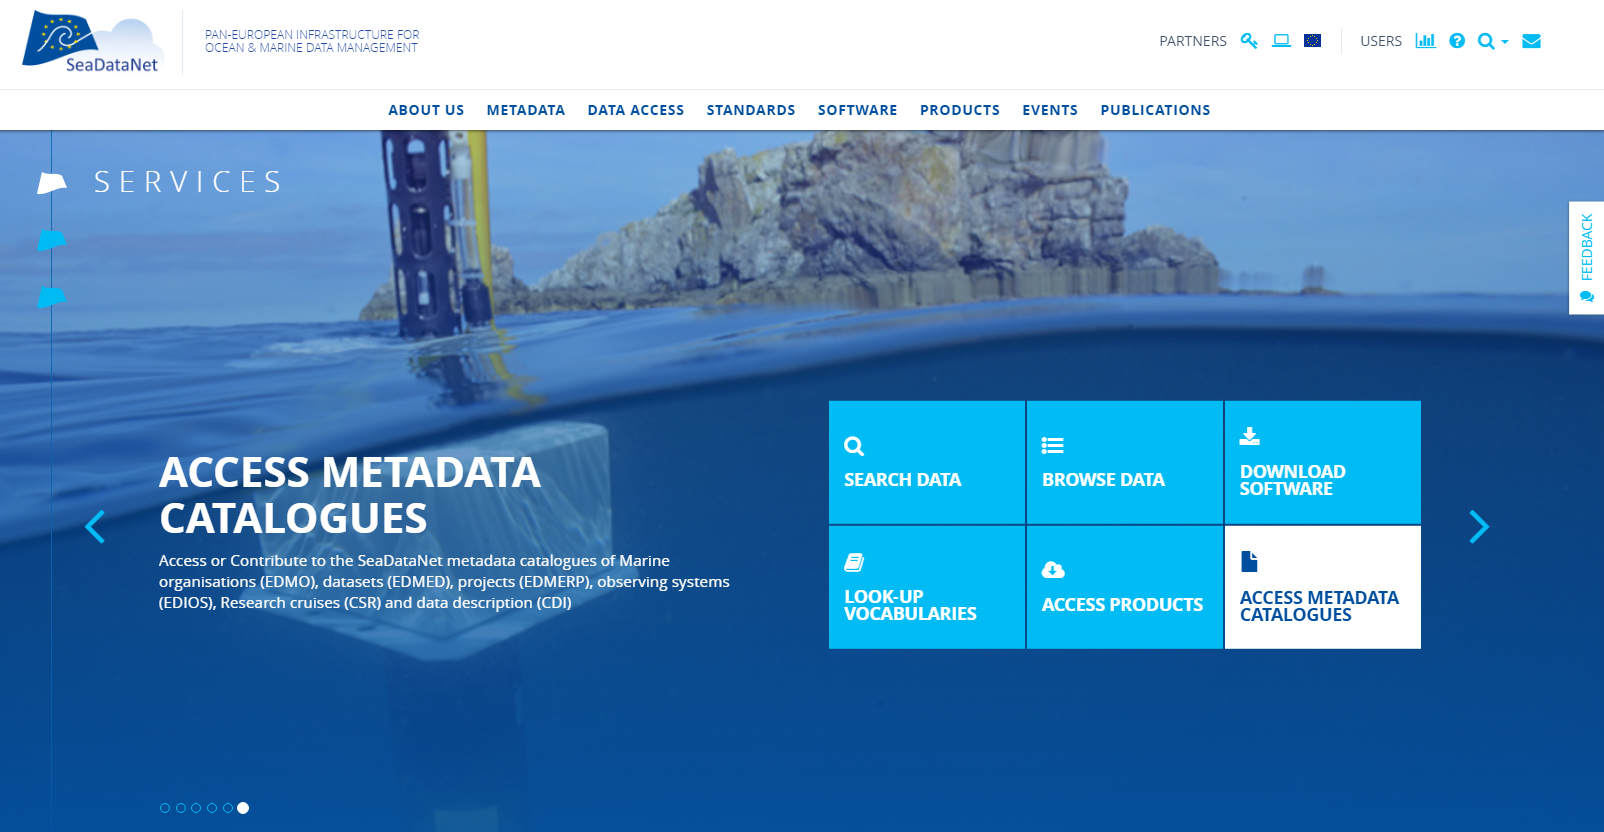 Pan-European Infrastructure for Ocean & Marine Data Management (SeaDataNet/SeaDataCloud)